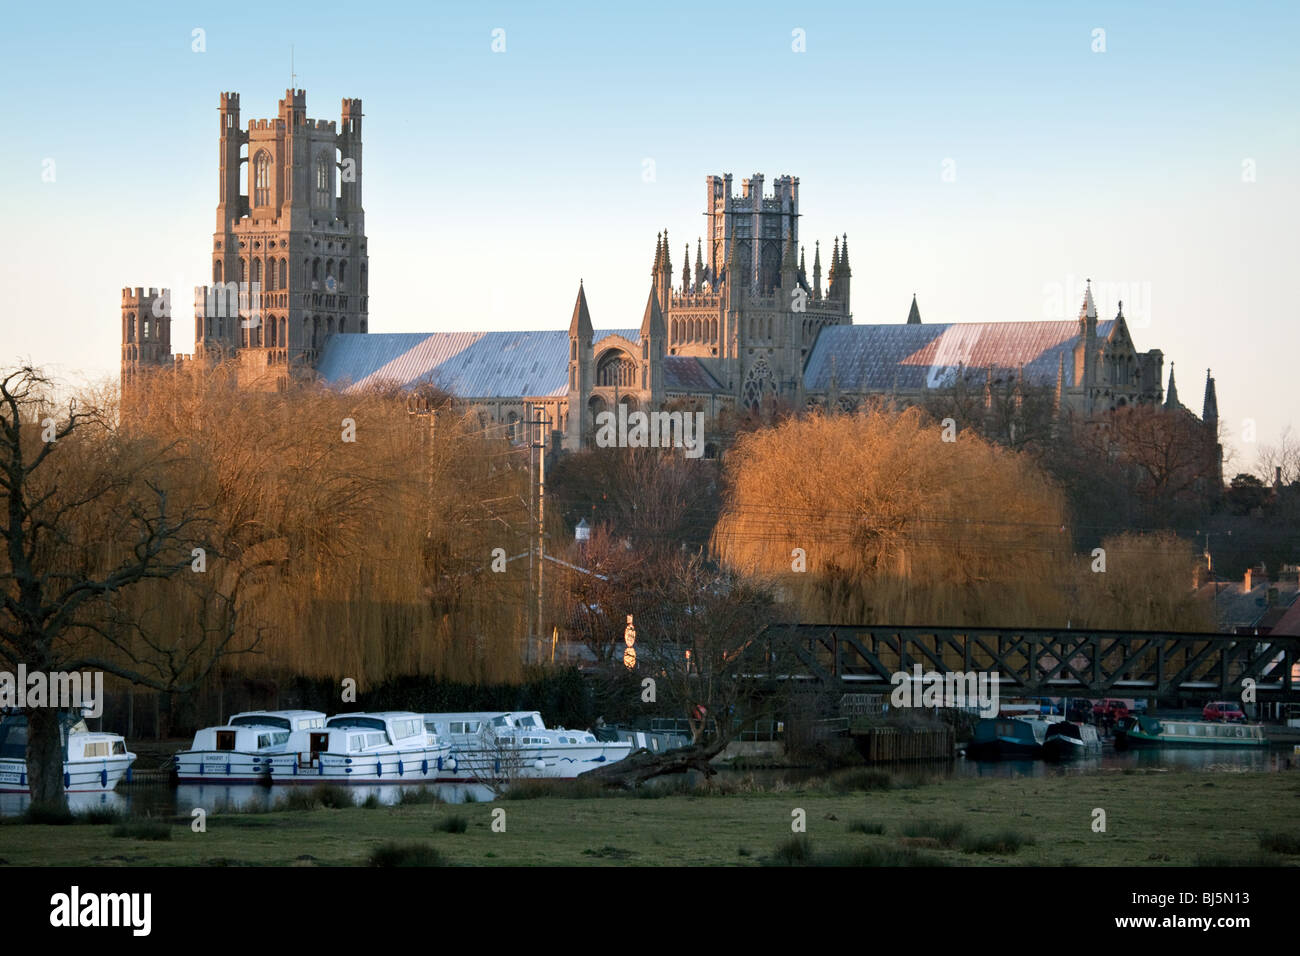 Ely cathedral at sunset, Ely, Cambridgeshire, UK - Stock Image